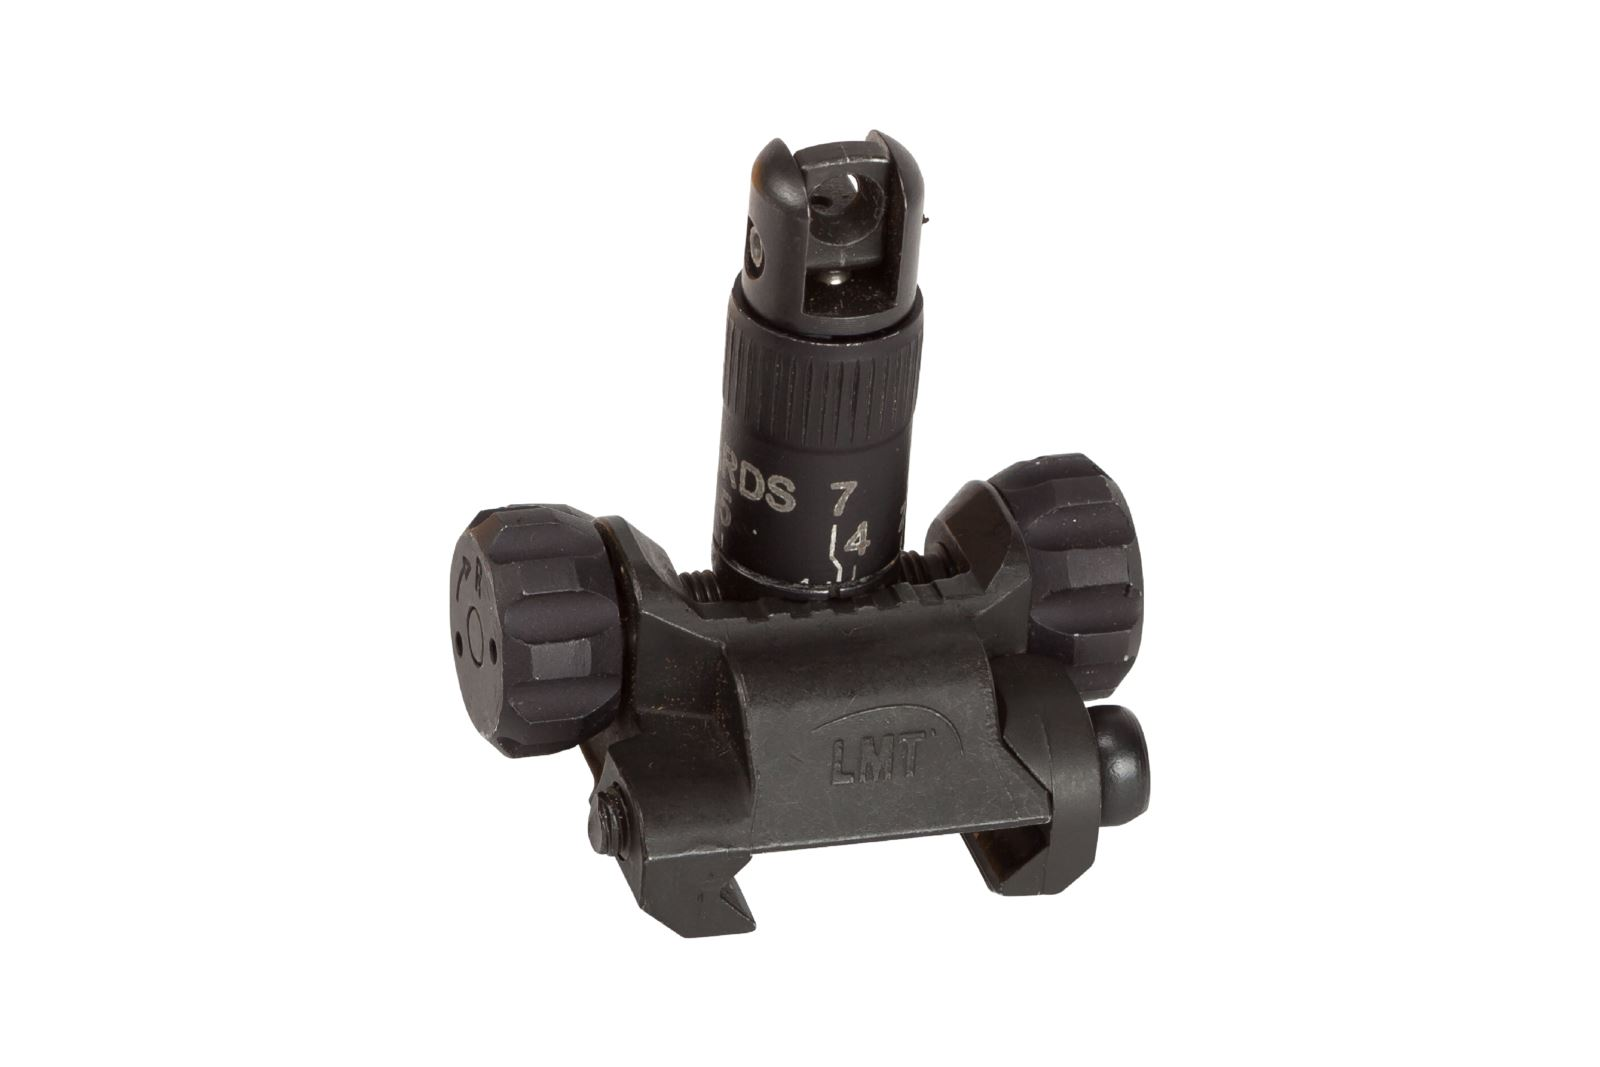 LMT Lewis Machine 5.56 IMPERIAL REAR FLIP-UP SIGHT